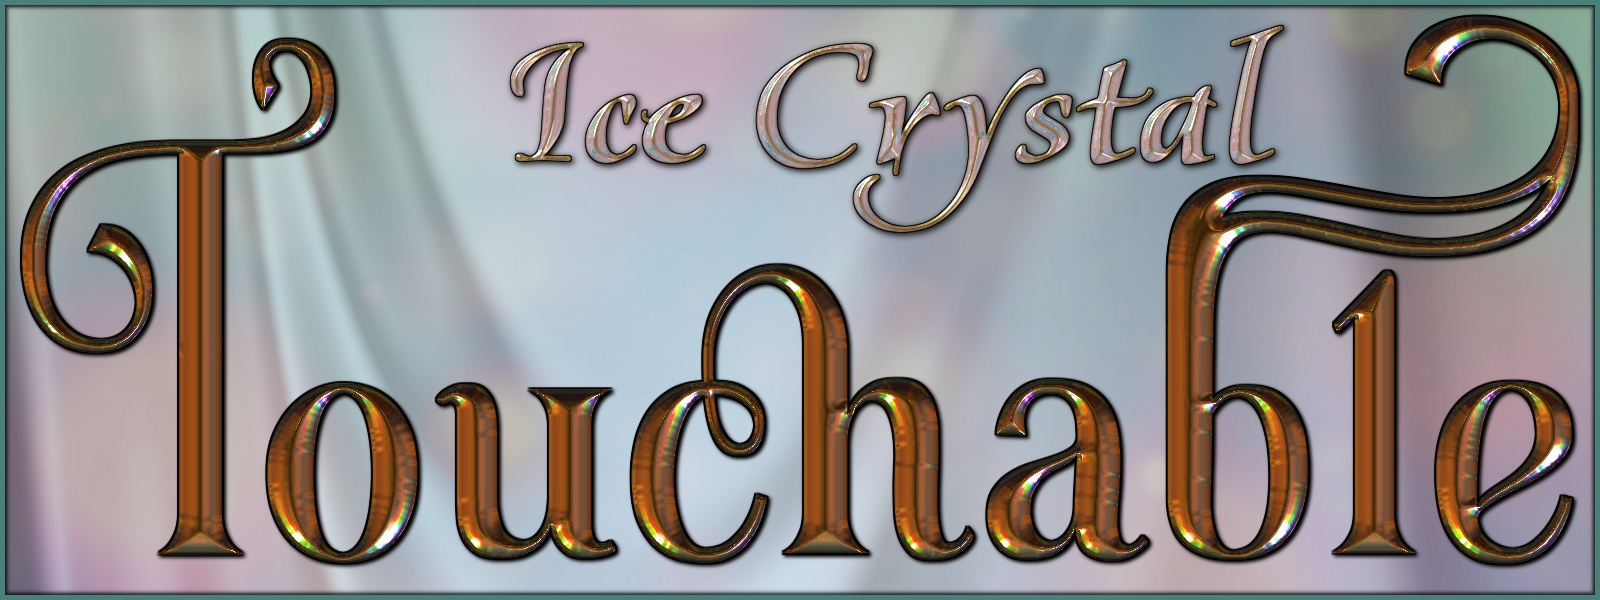 Touchable Ice Crystal Poser by -Wolfie-